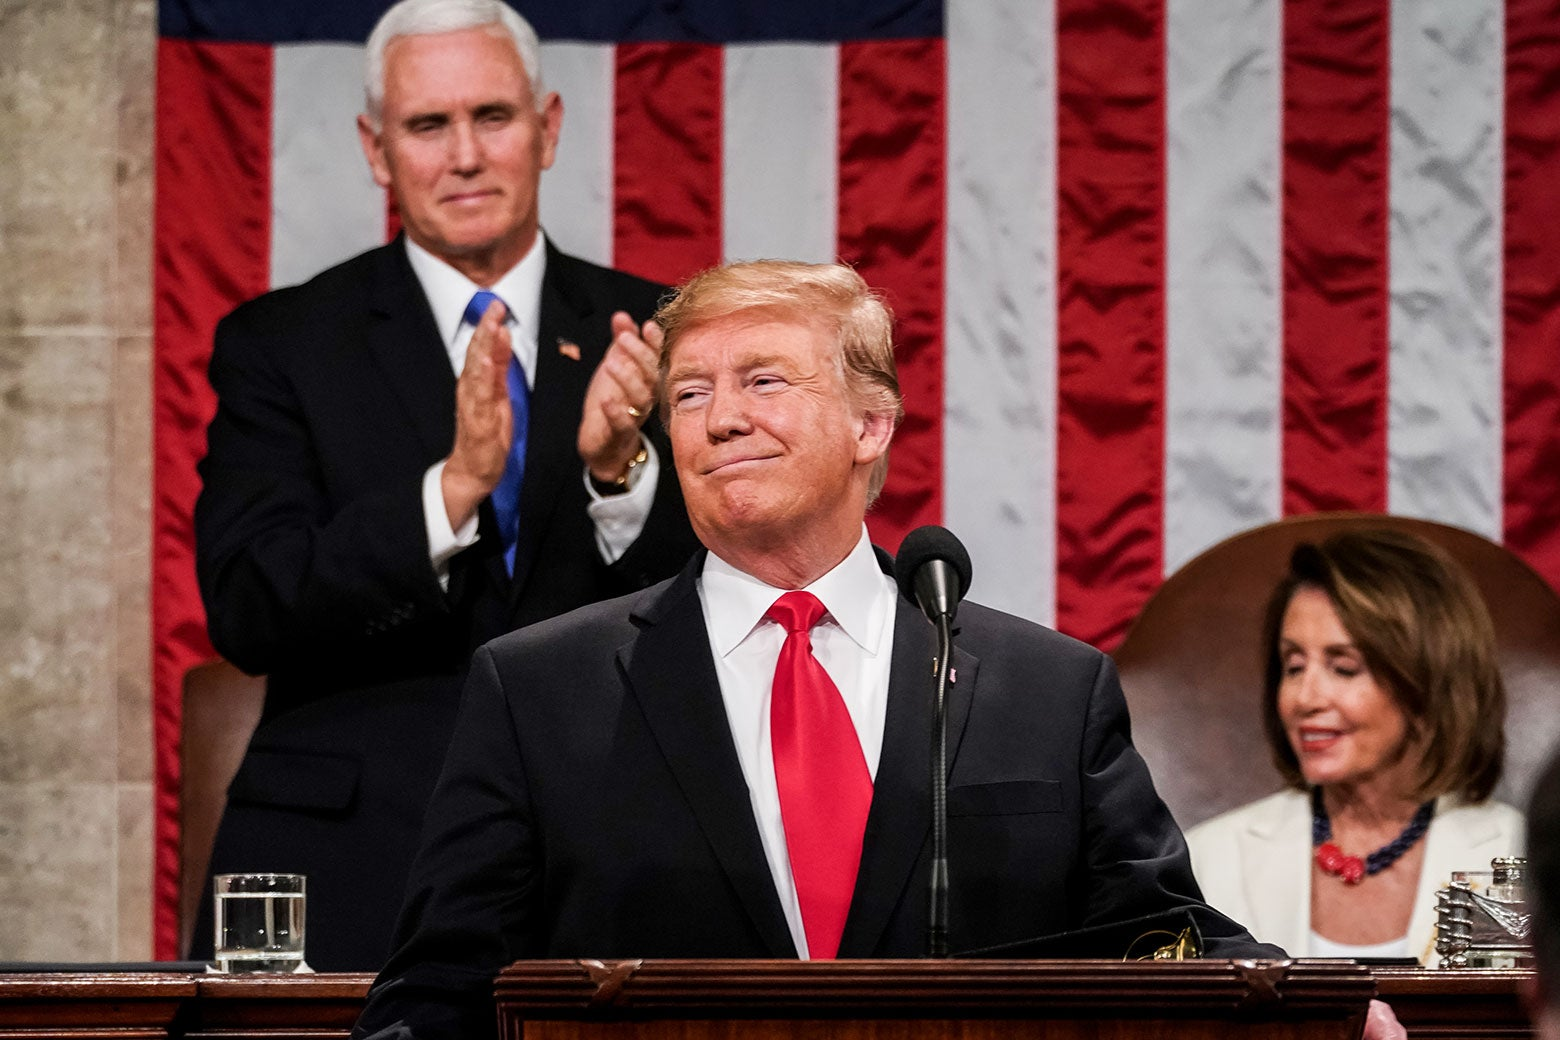 Donald Trump smiles as Mike Pence stands to applaud. Nancy Pelosi is seated and smiling.